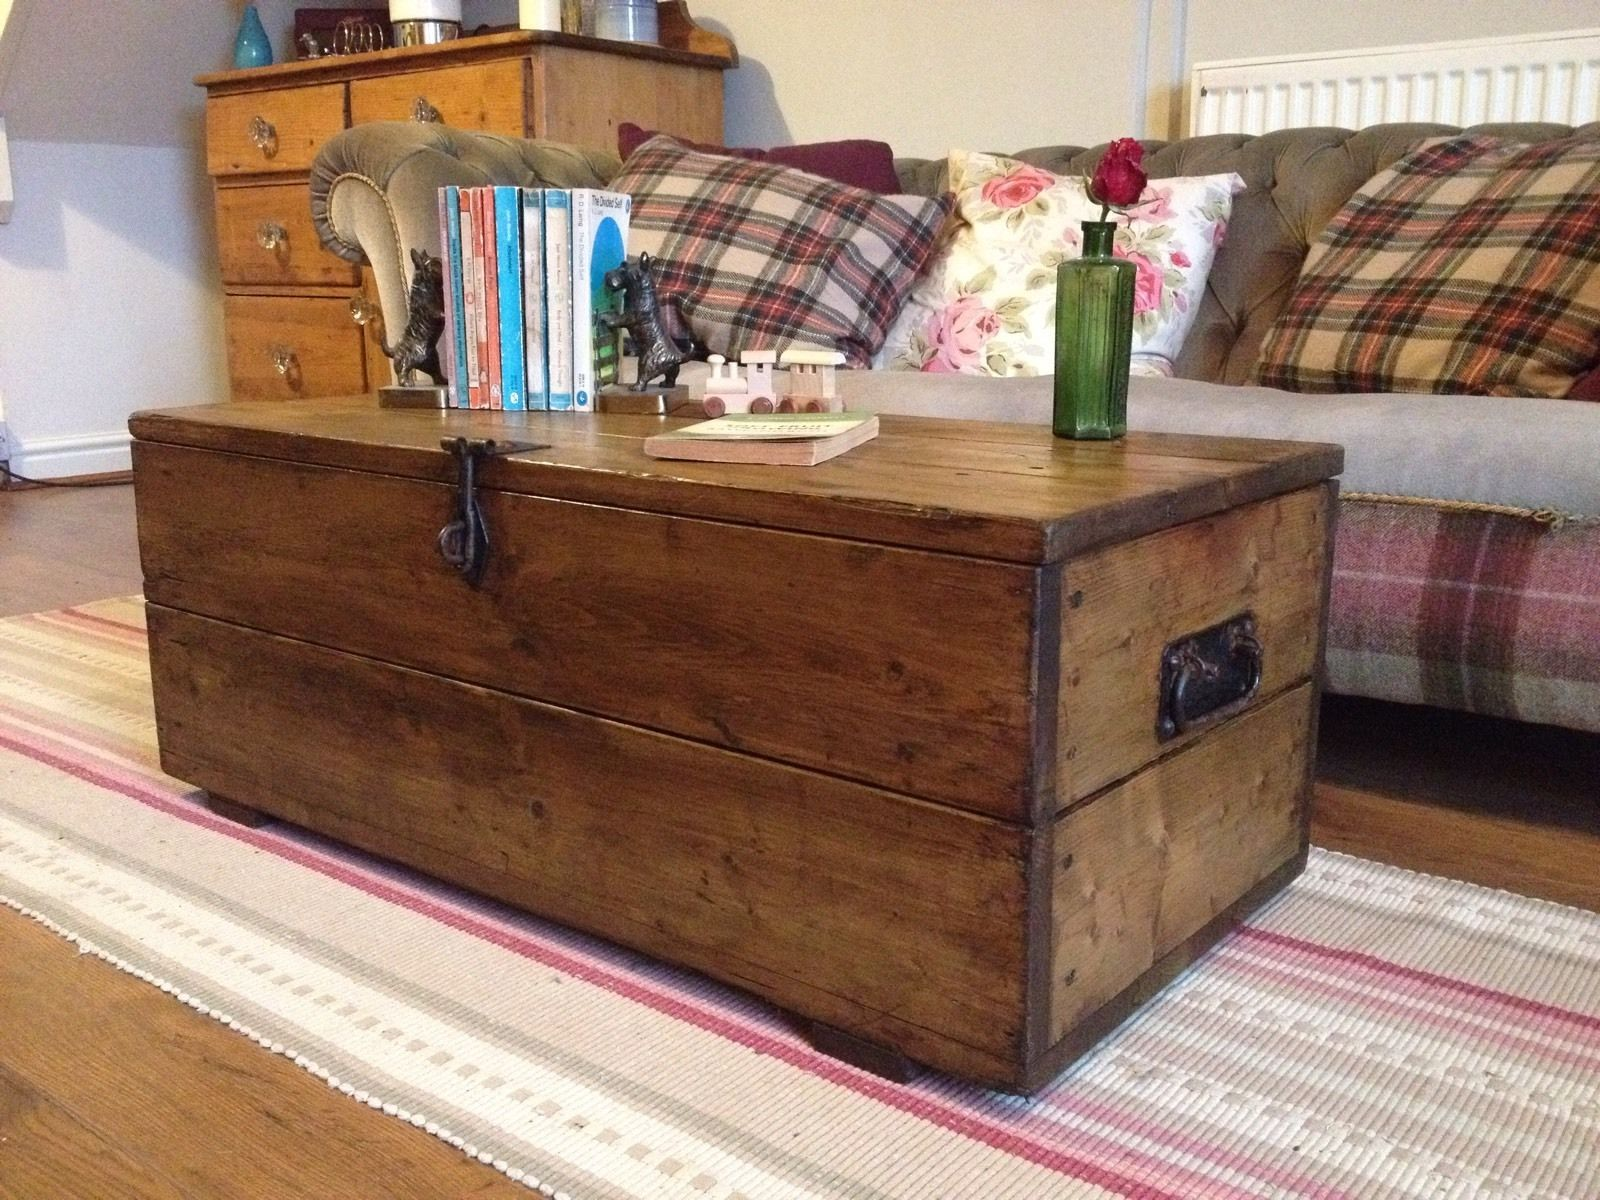 Ebay Mesas De Centro Old Rustic Pine Box Vintage Wooden Chest Coffee Table Toy Or